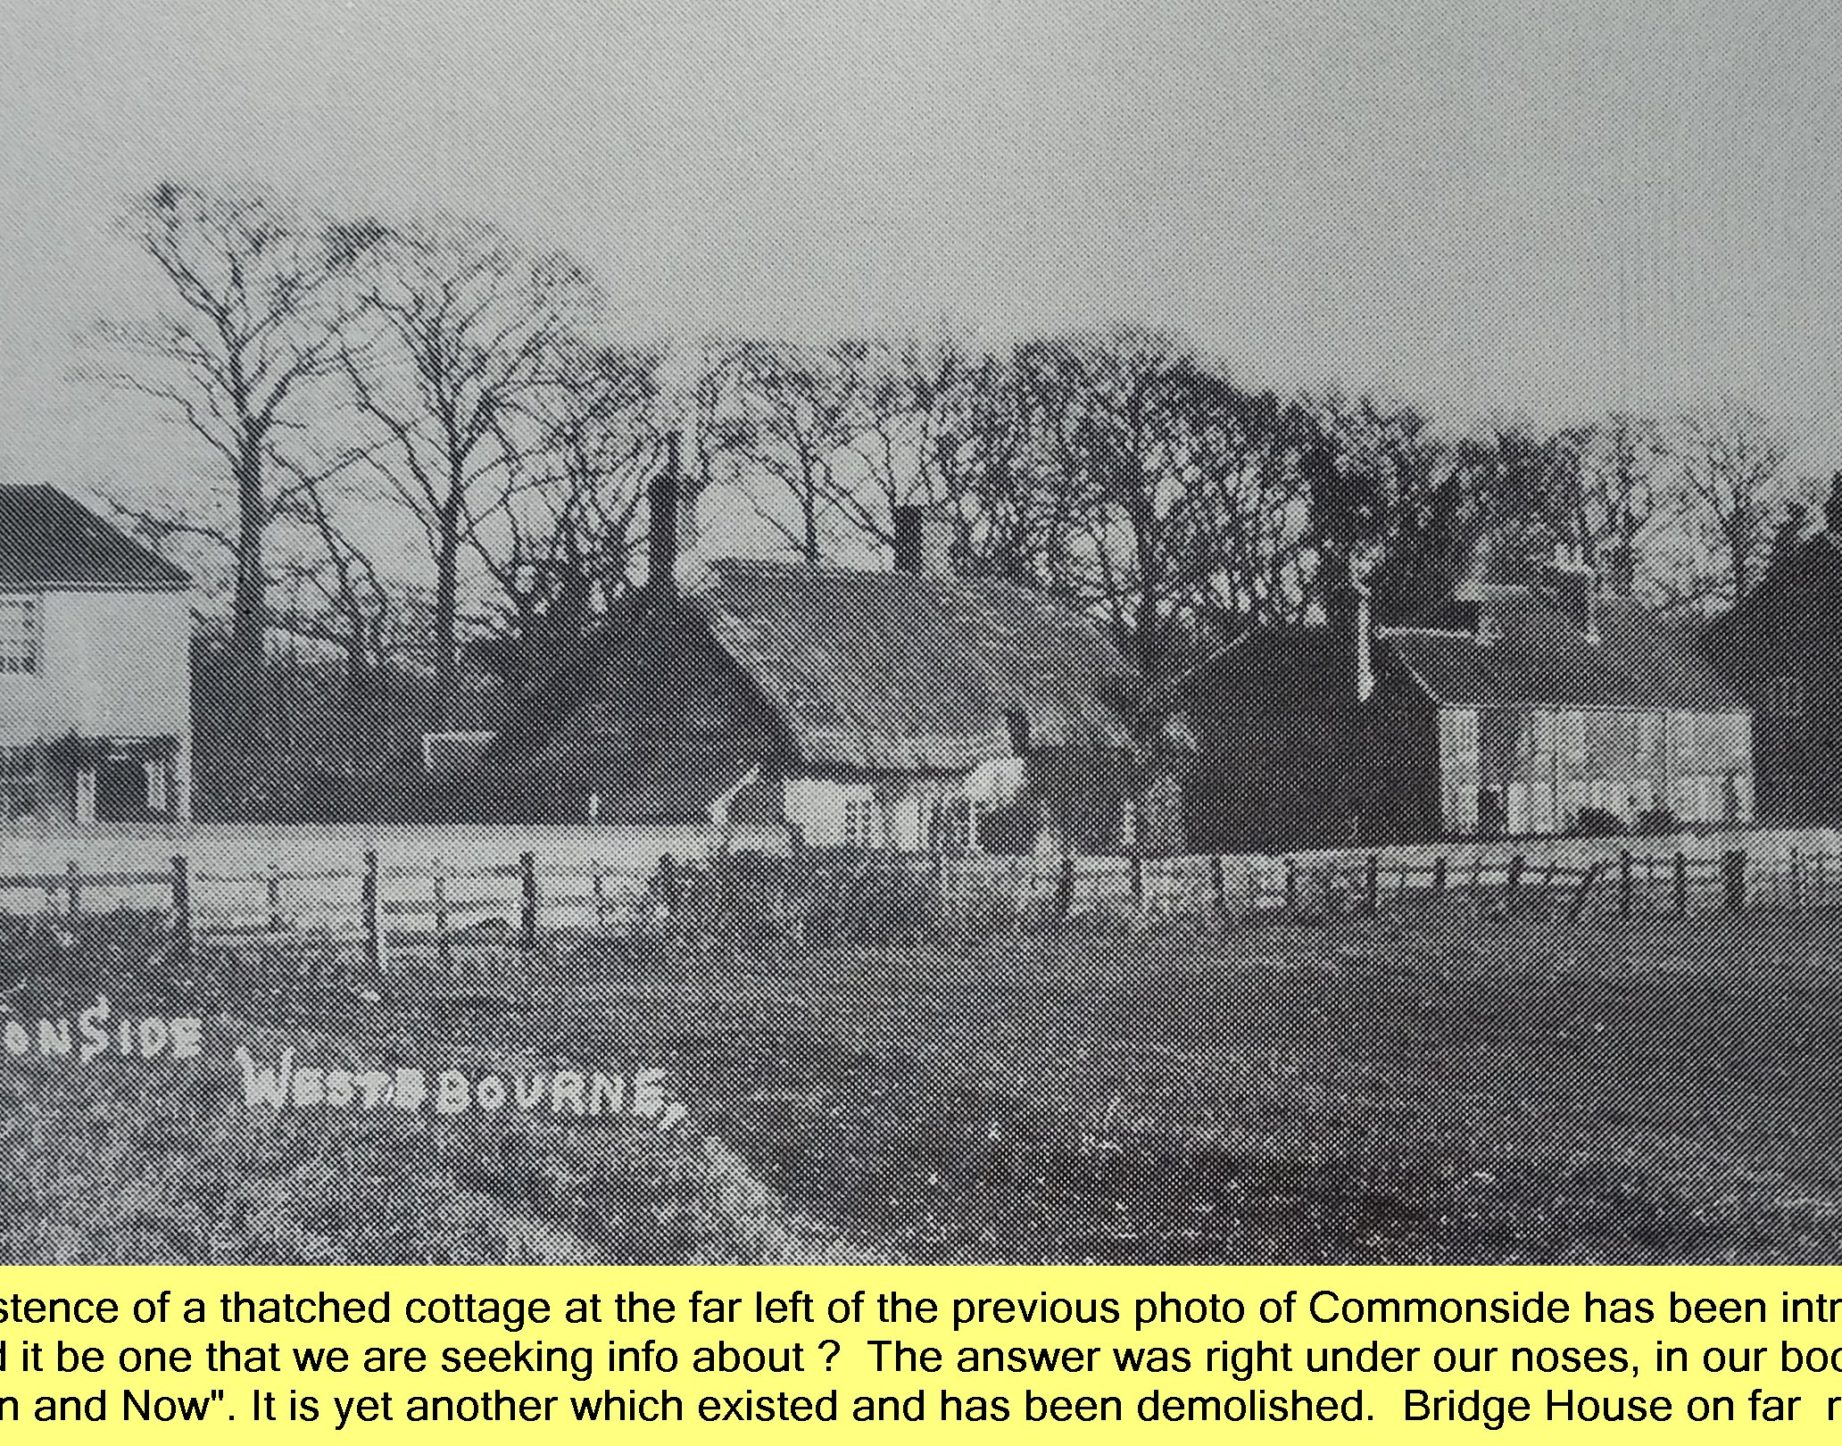 WESTBOURNE HISTORY PHOTO, COMMONSIDE, THATCH, BRIDGE HOUSE